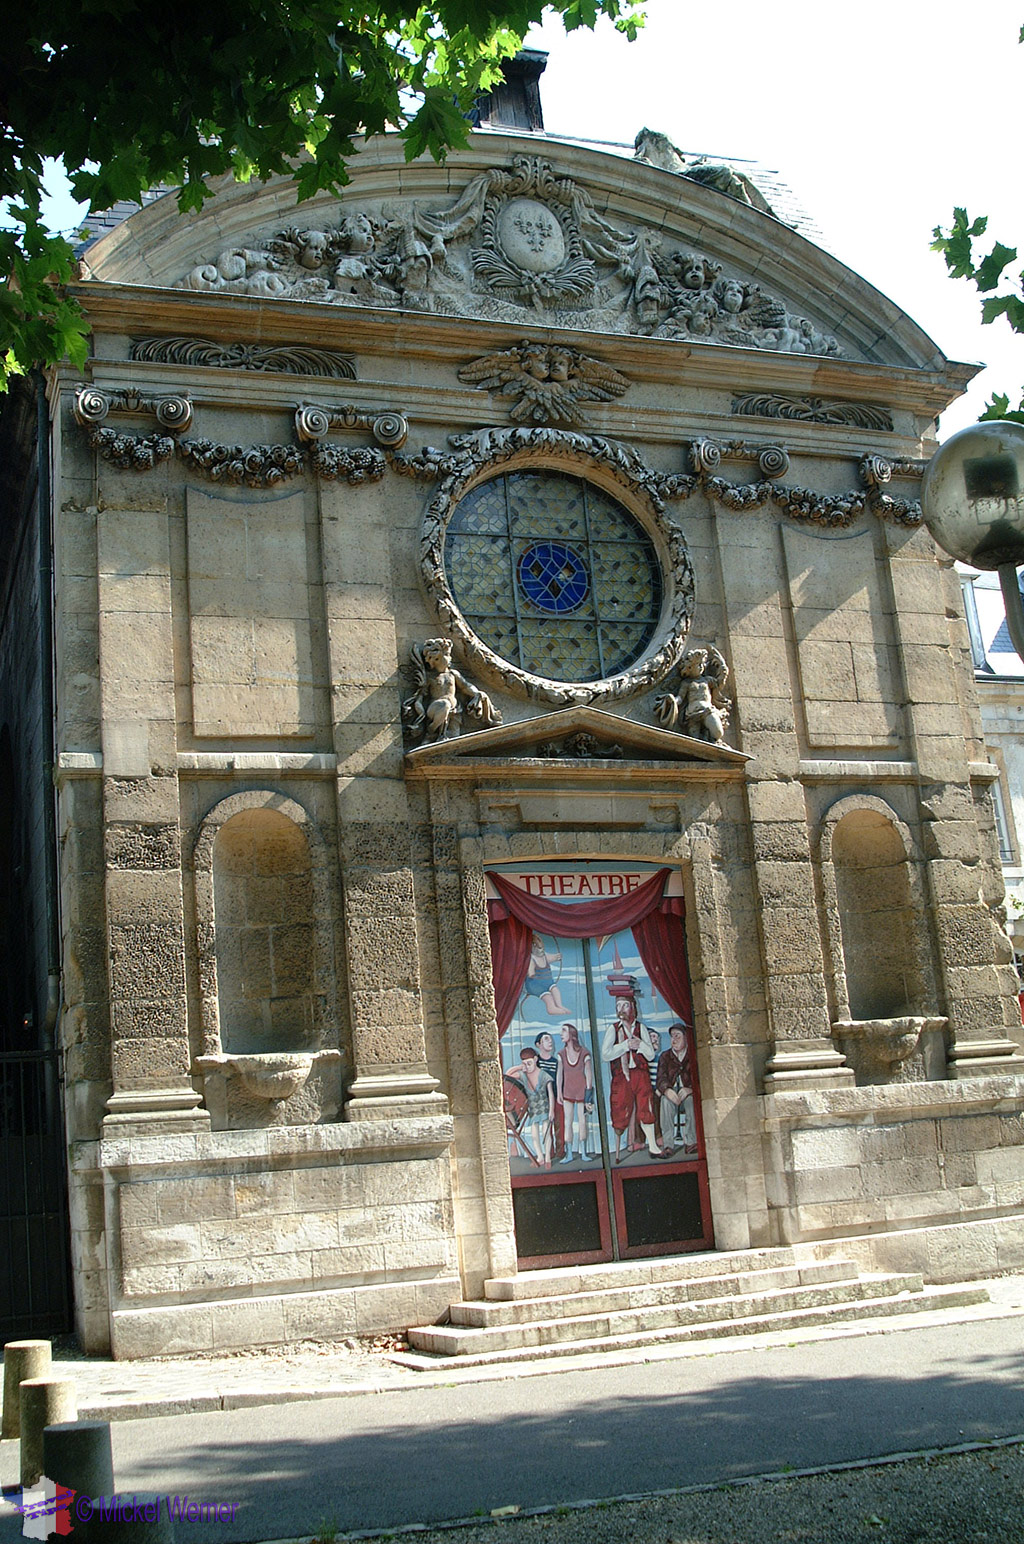 Small theatre in Rouen